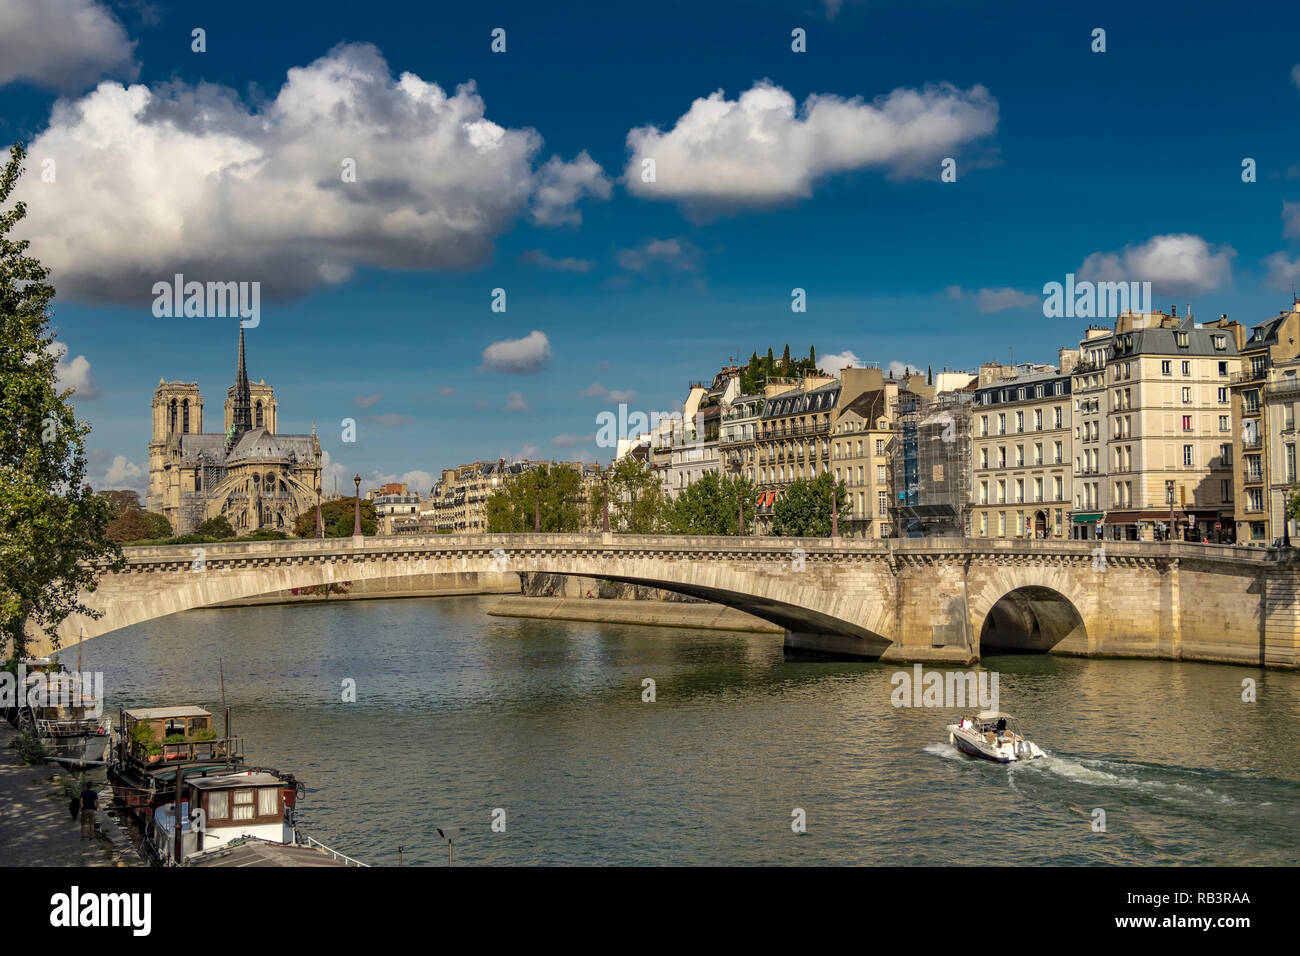 Pont De La Tournelle spans the River Seine with Notre Dame Cathedral and Île Saint-Louis in the background  on a warm summers day ,Paris ,France - Stock Image